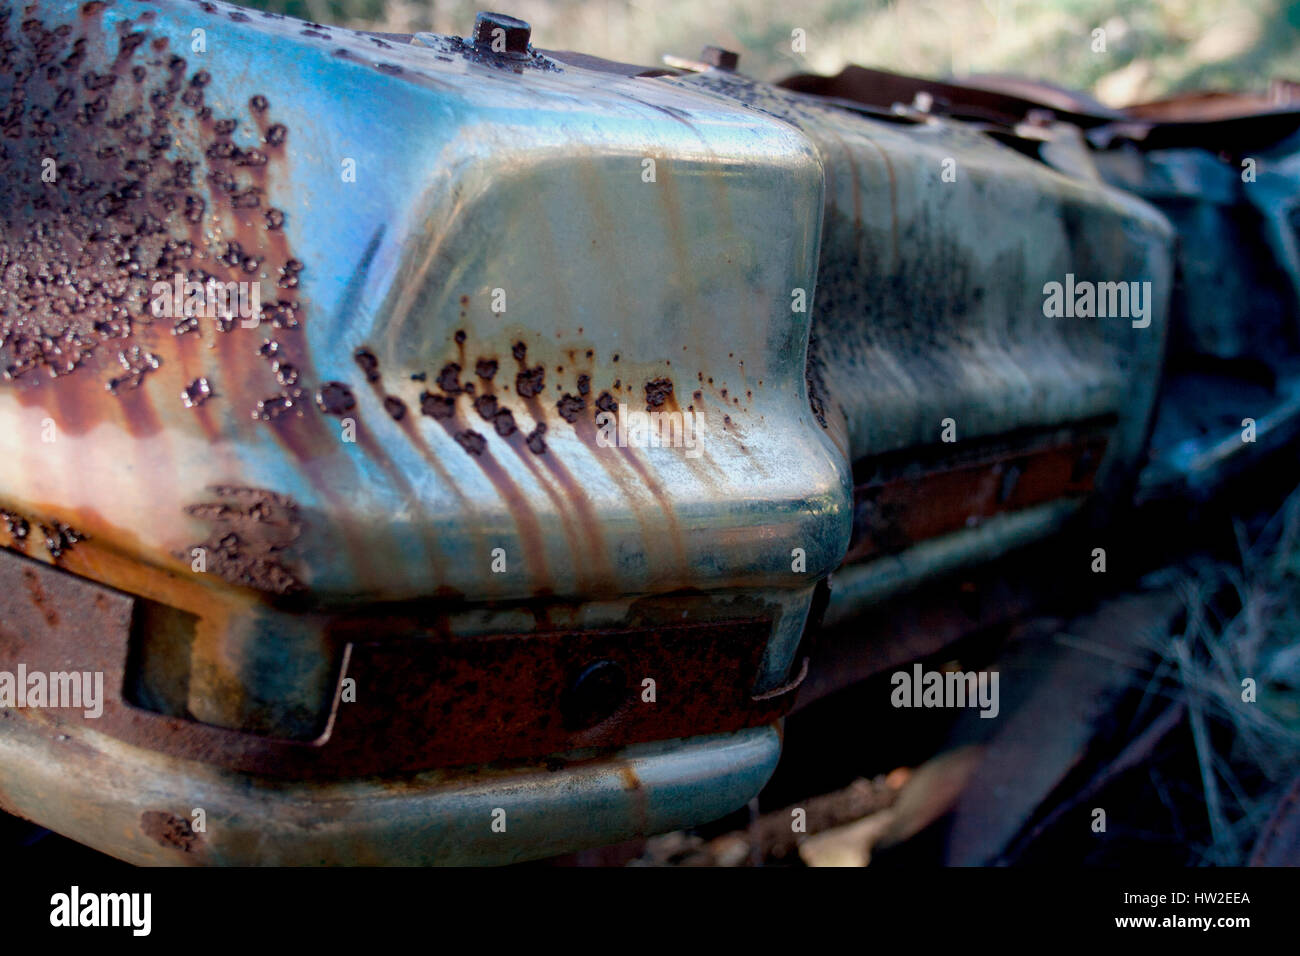 The rusted ruins of an old automobile left to rust. - Stock Image